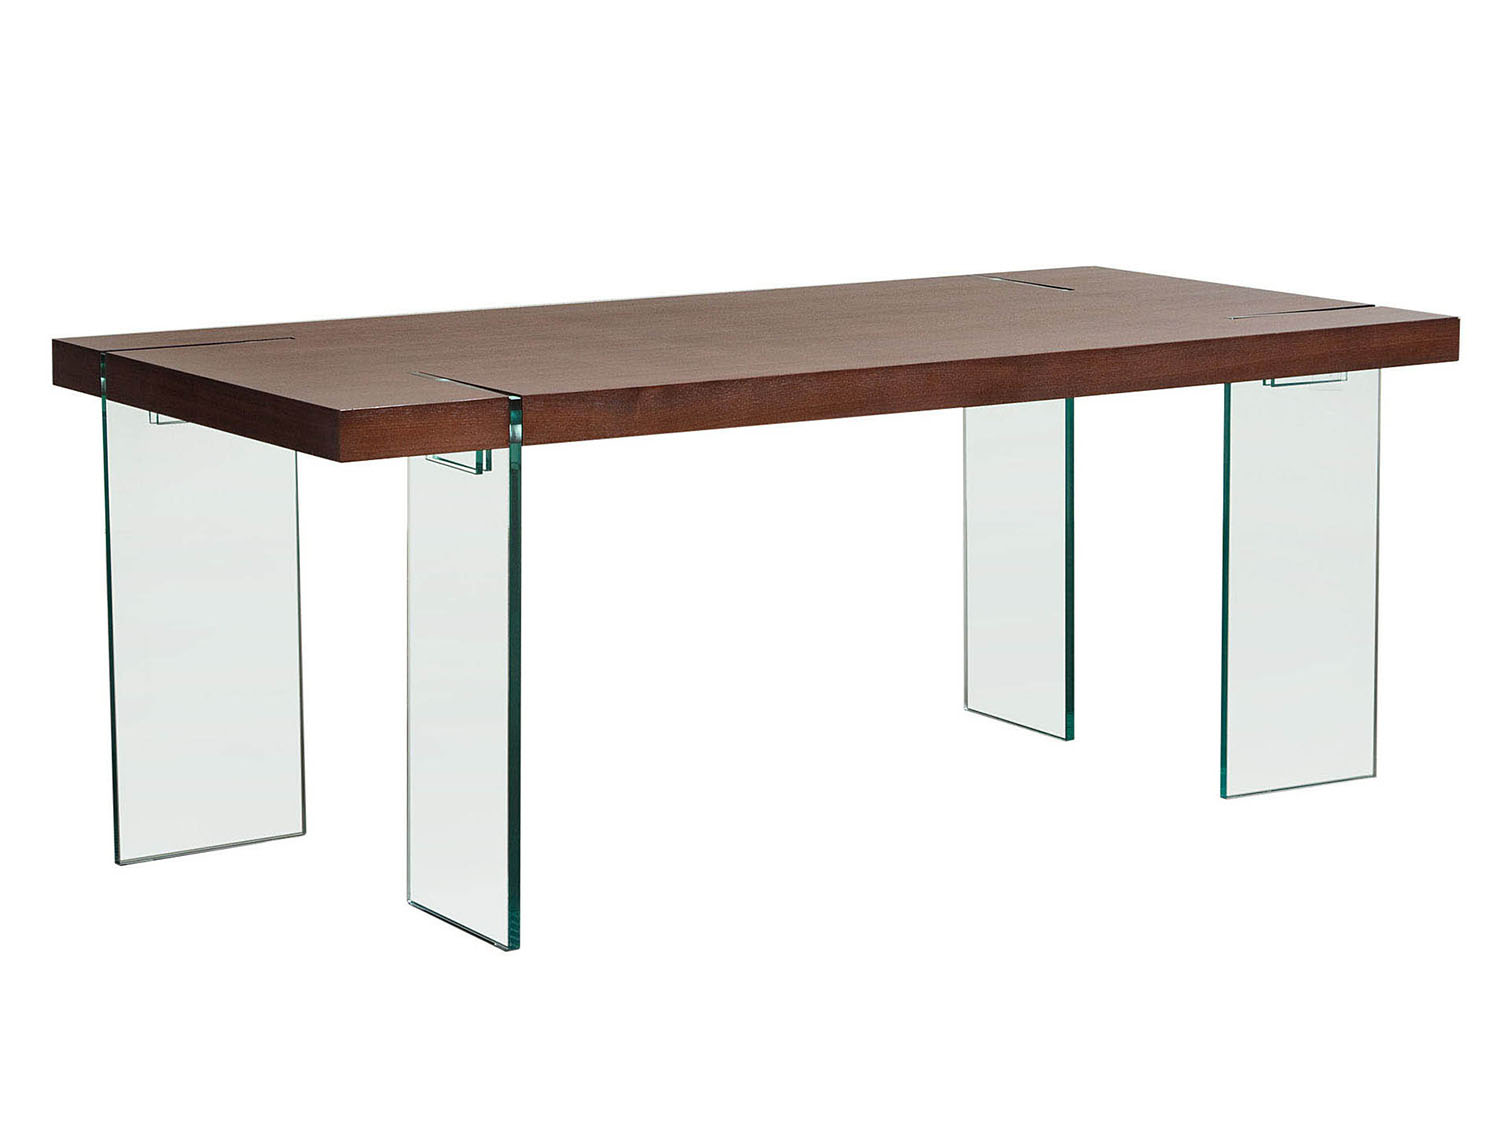 Splendid Glass Leg Dining Table Multiple Color Options Product Photo